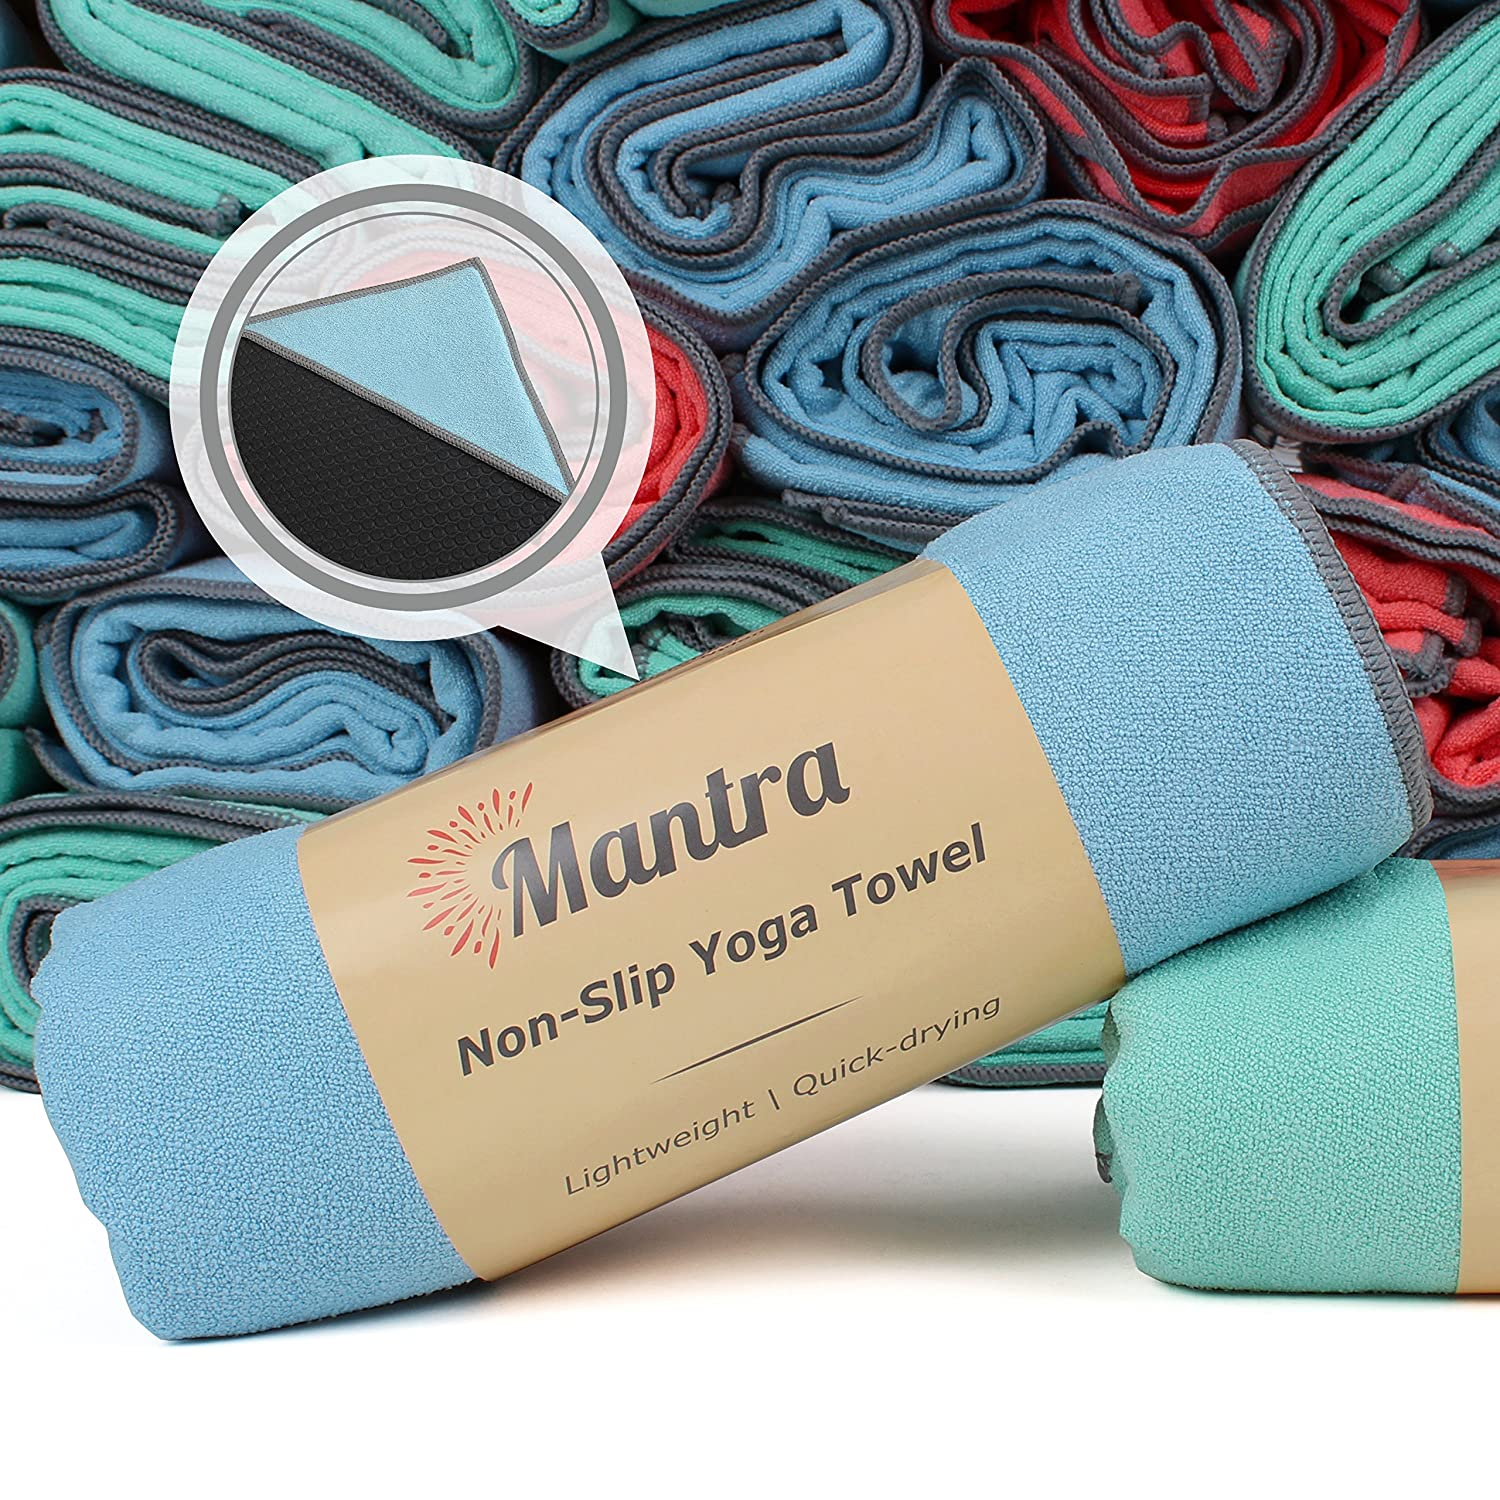 Mantra™ Yoga Towel - Non Slip Hot Yoga Towel with Anchor Fit Corner Pockets - Best Yoga Mat Towel for Pilates, Bikram, and Ashtanga